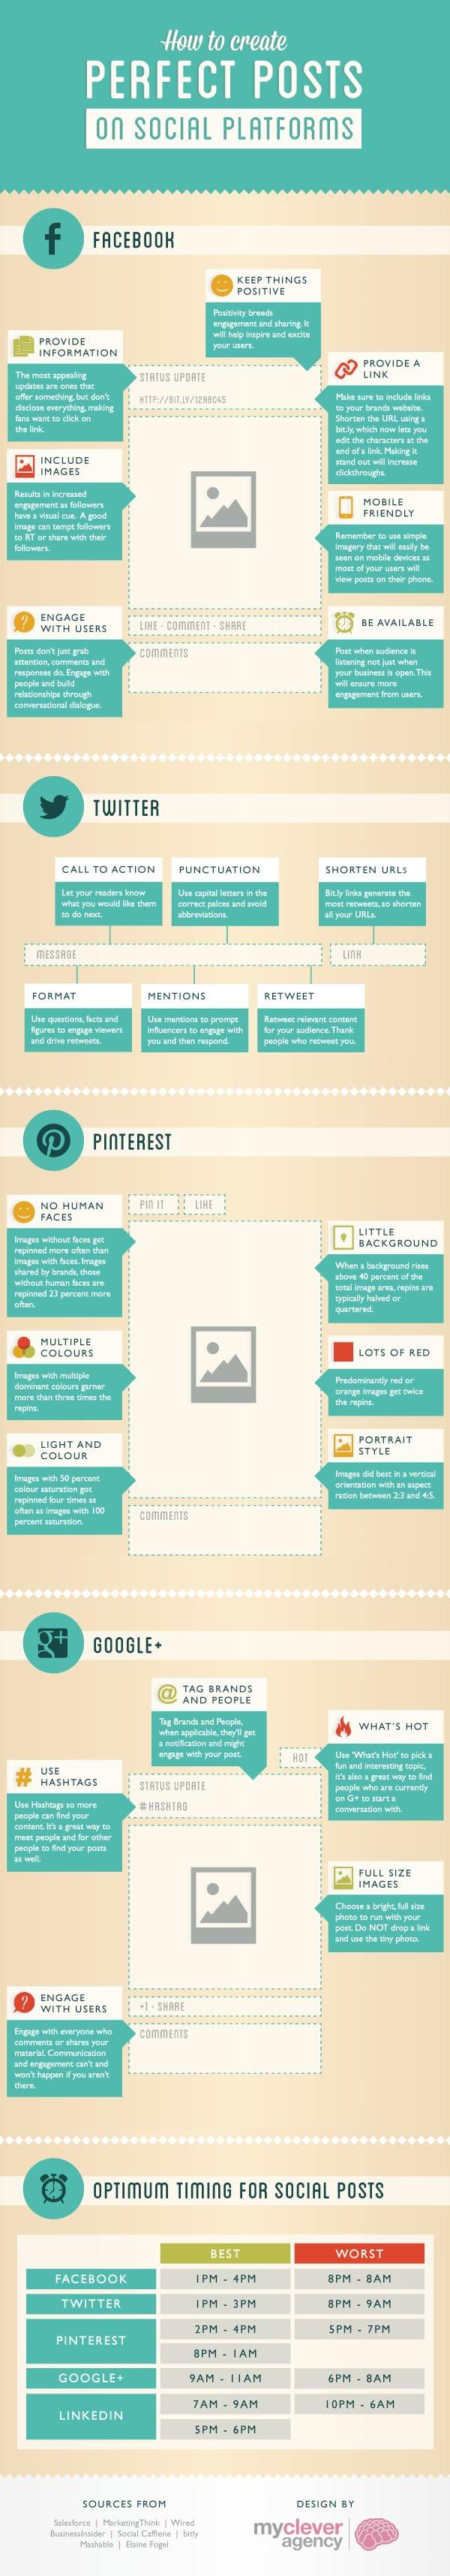 Perfect Posts Infographic